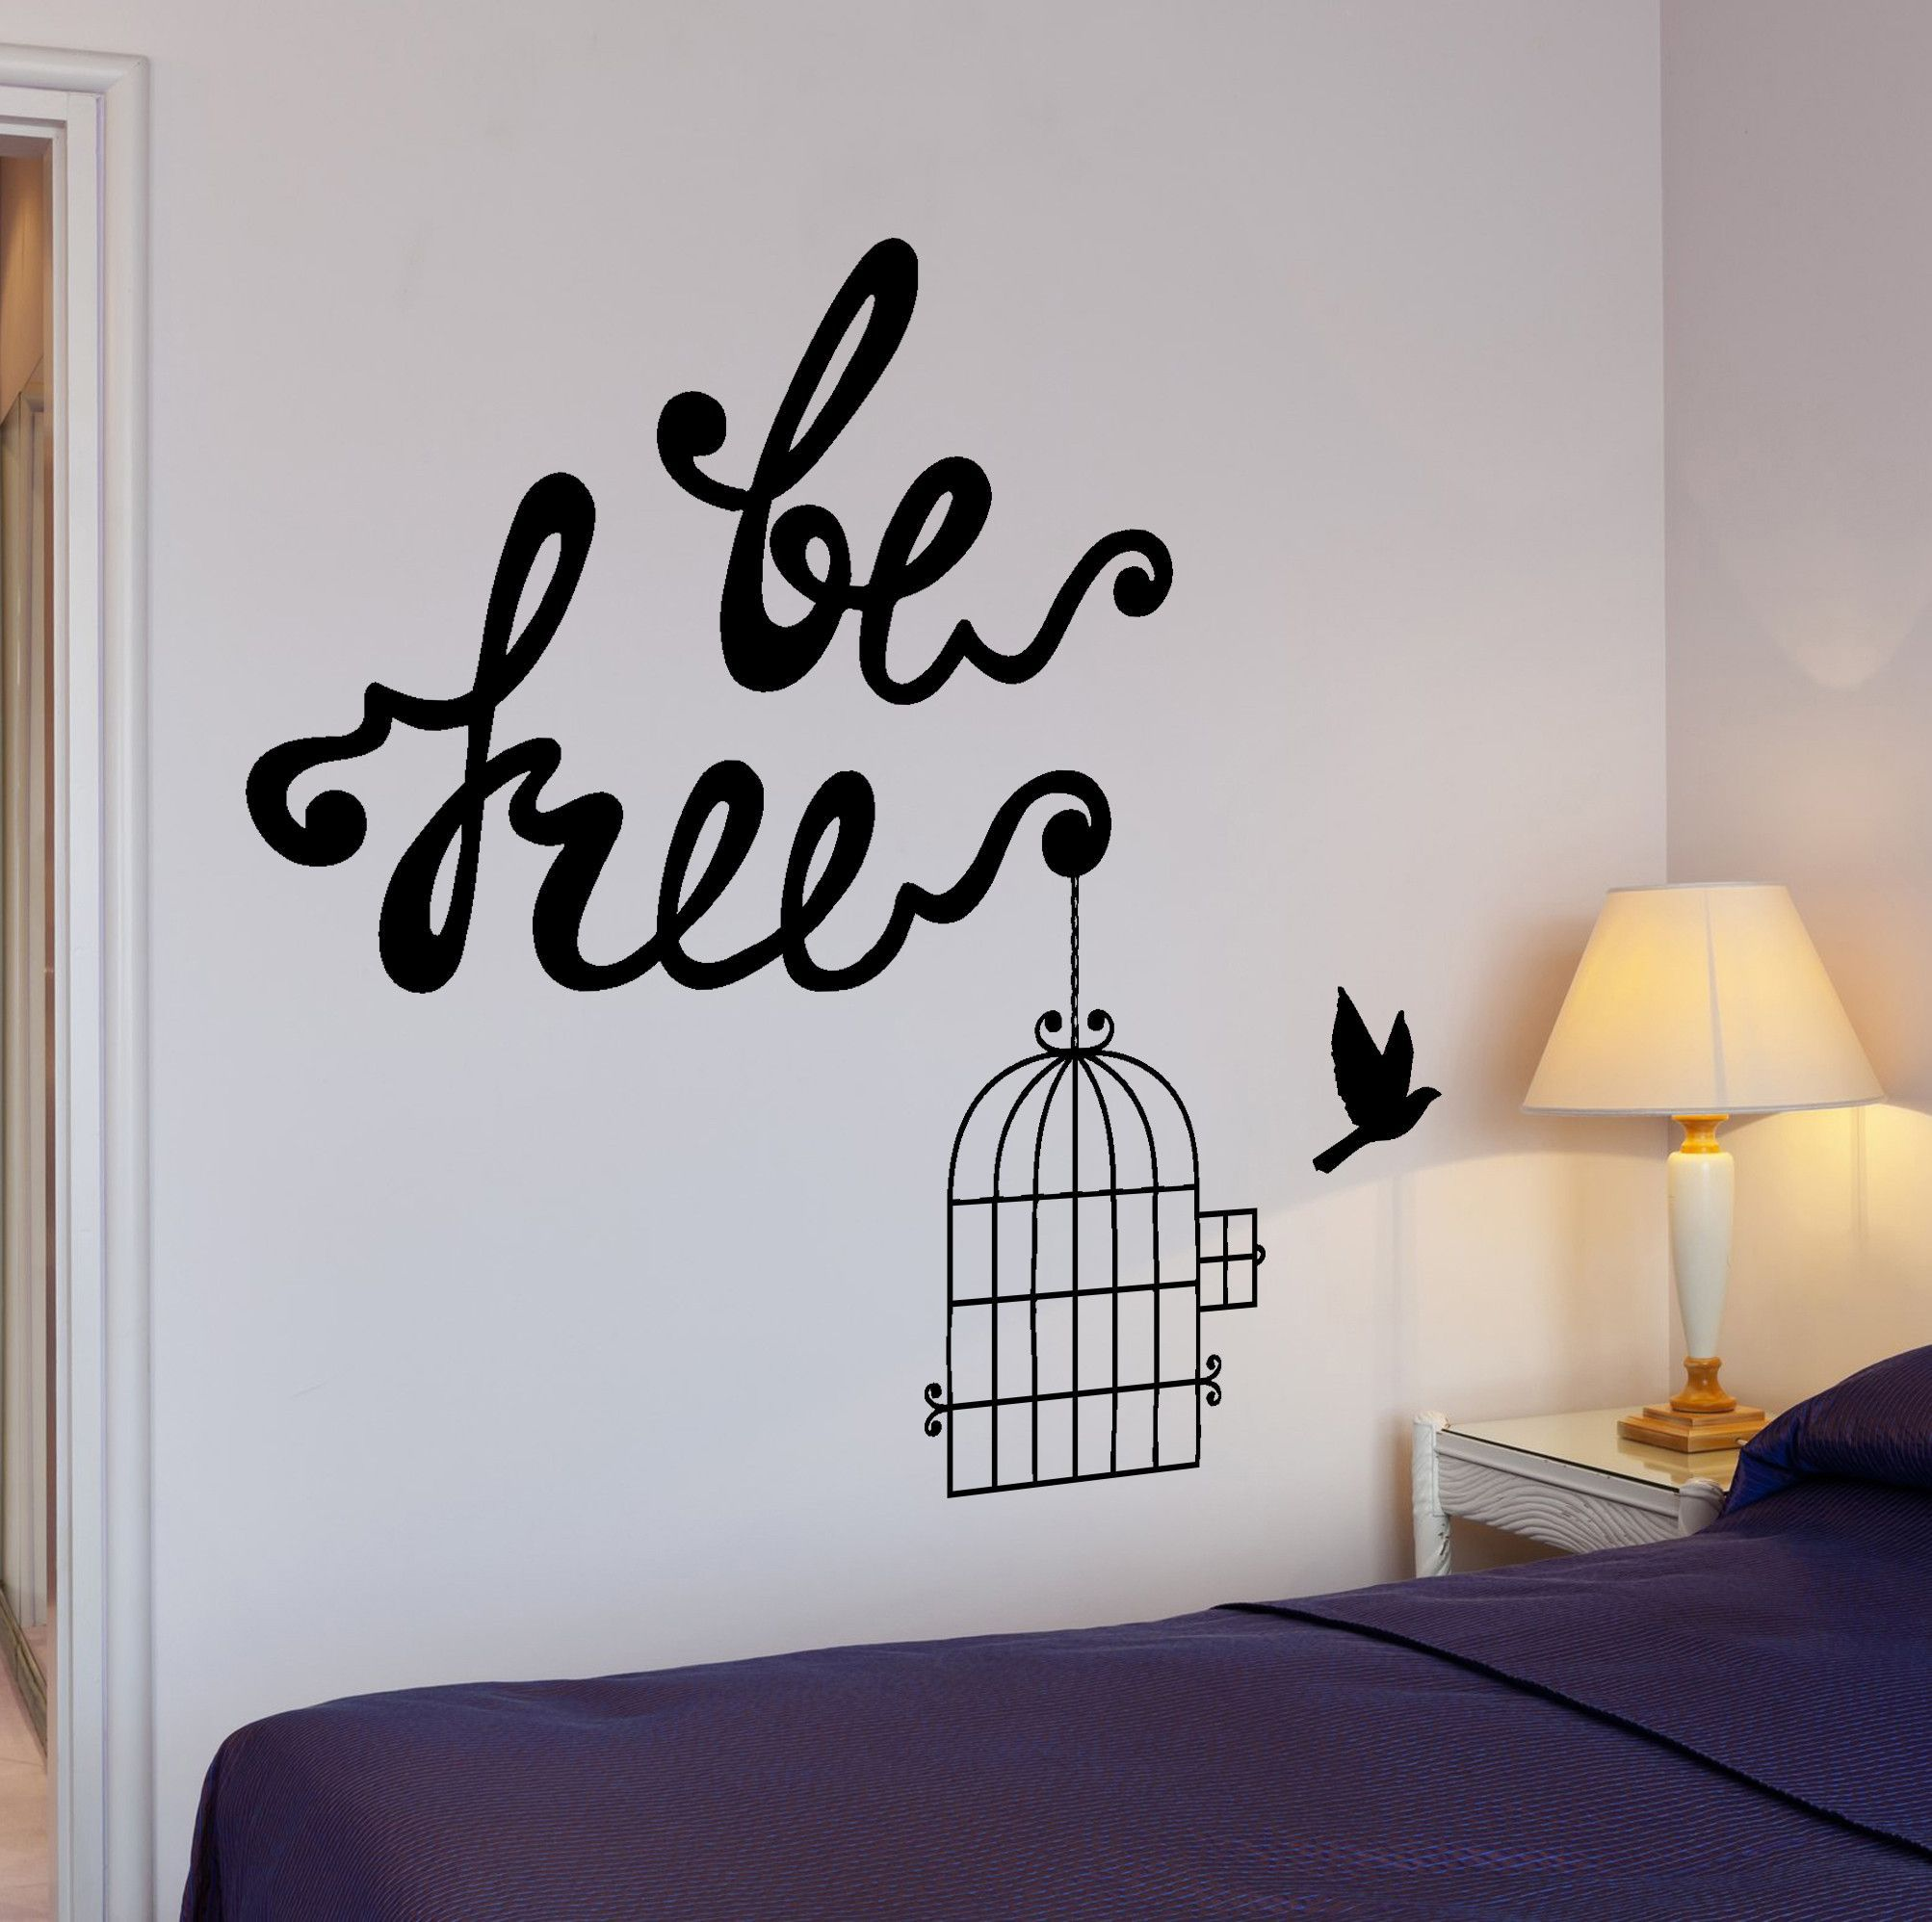 Wall vinyl decal motivation quote be free birds quote home interior